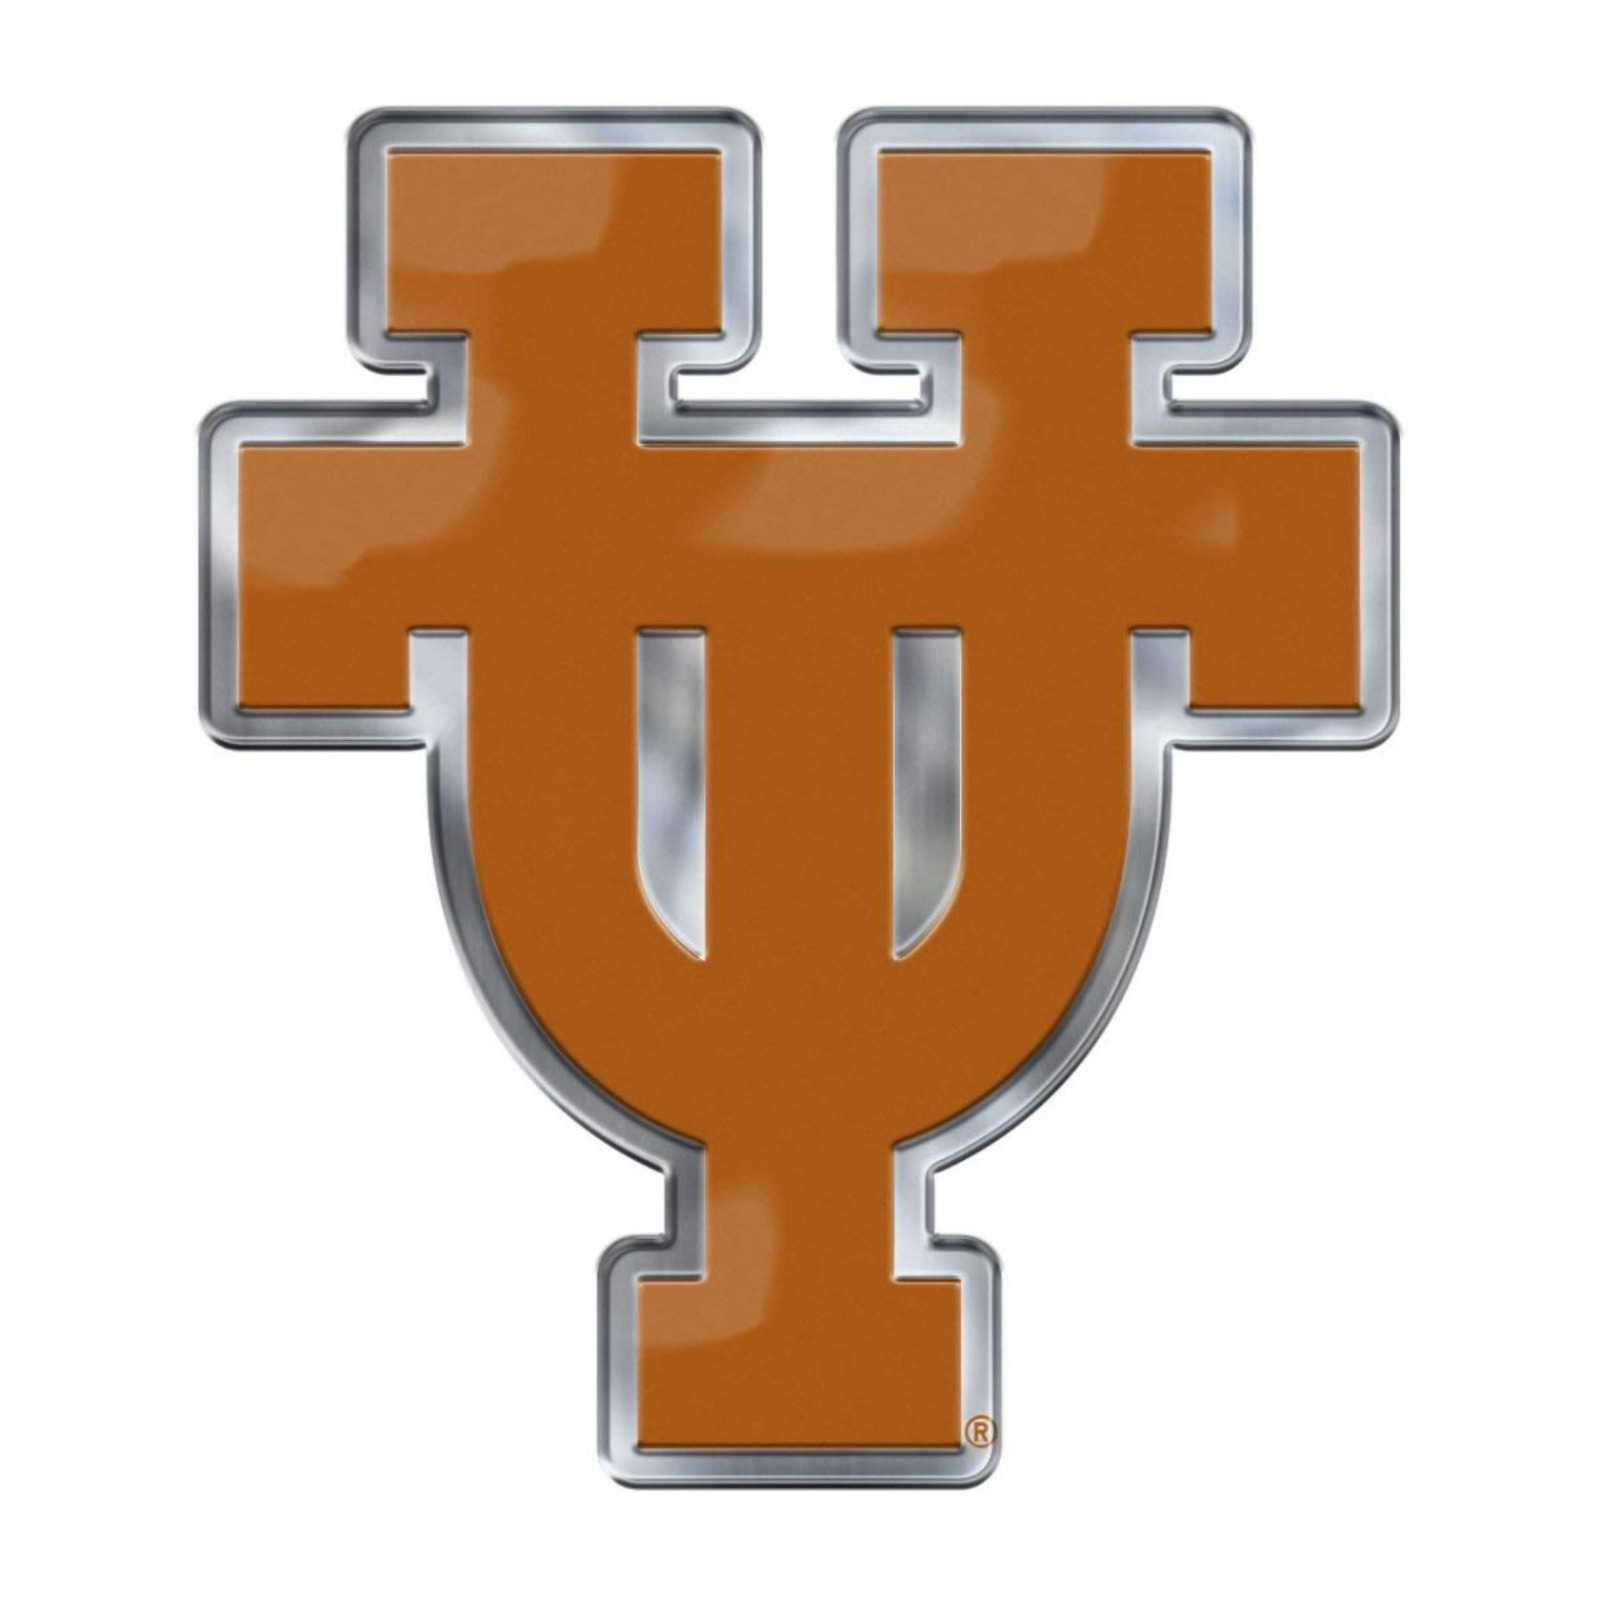 Details about Texas Longhorns CE4 Alternate Logo Color Auto Emblem Chrome  Decal University of.